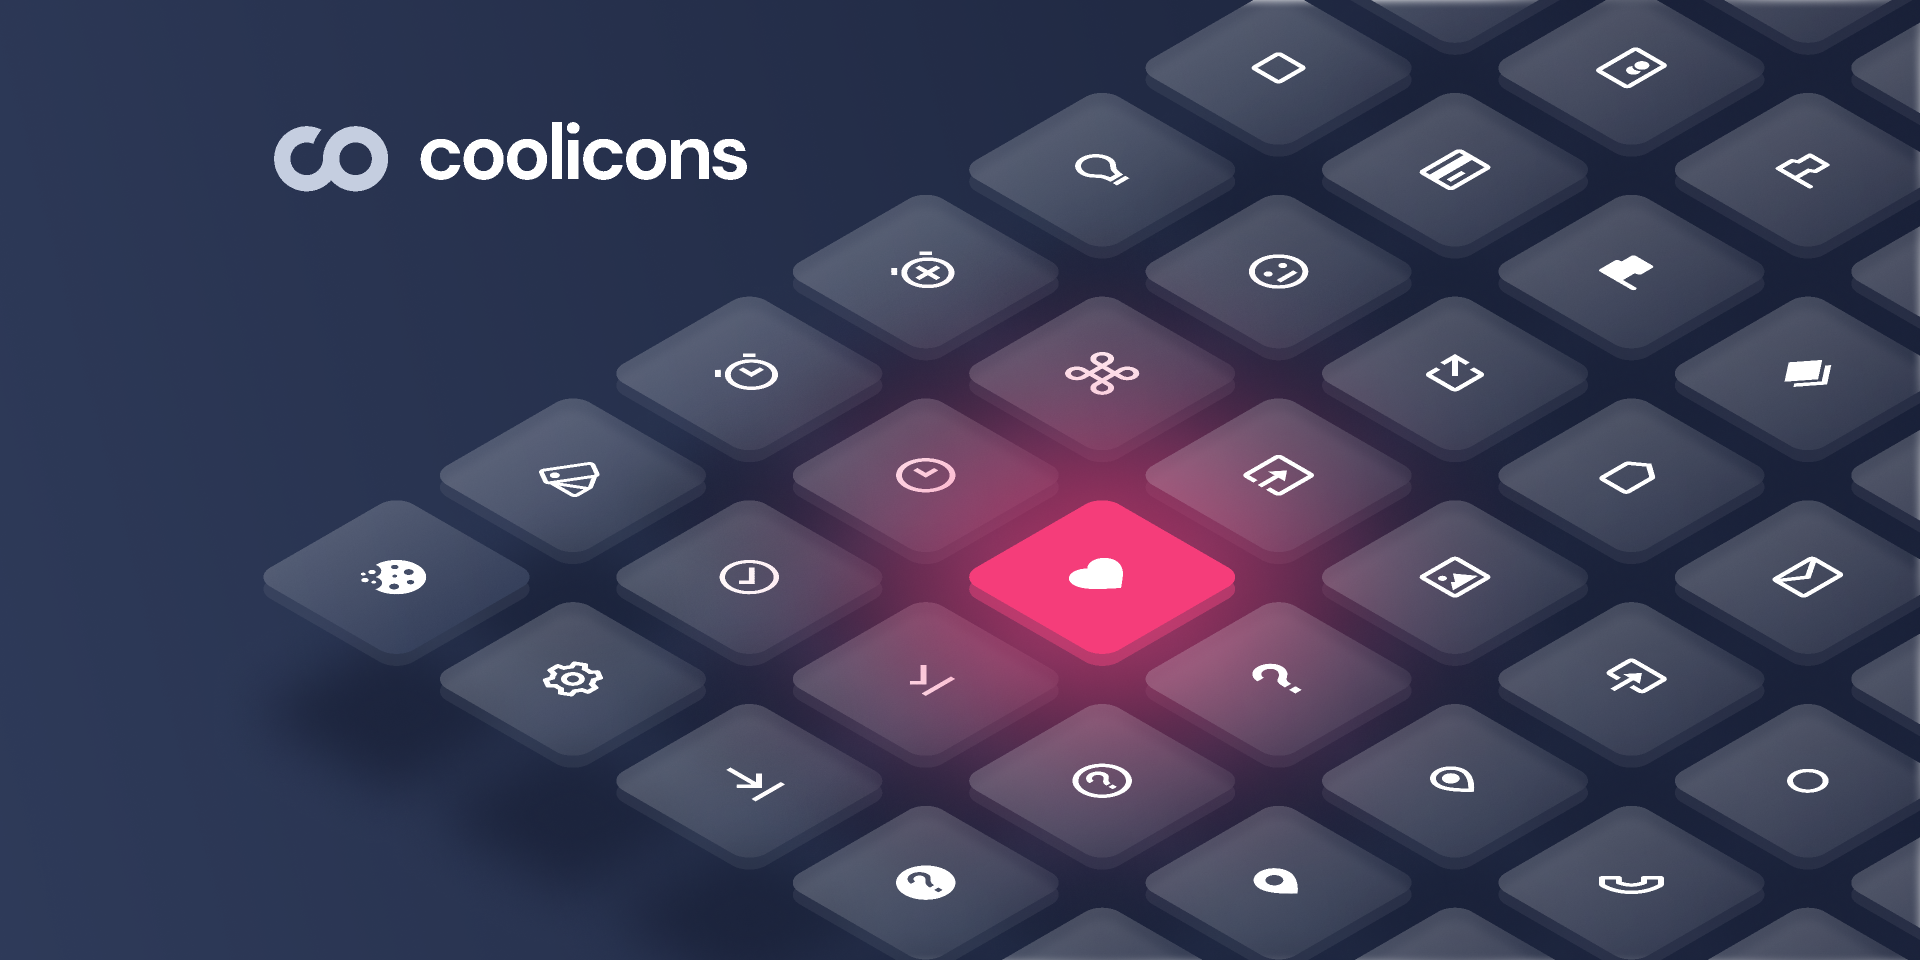 coolicons | Free Iconset from UIGarage